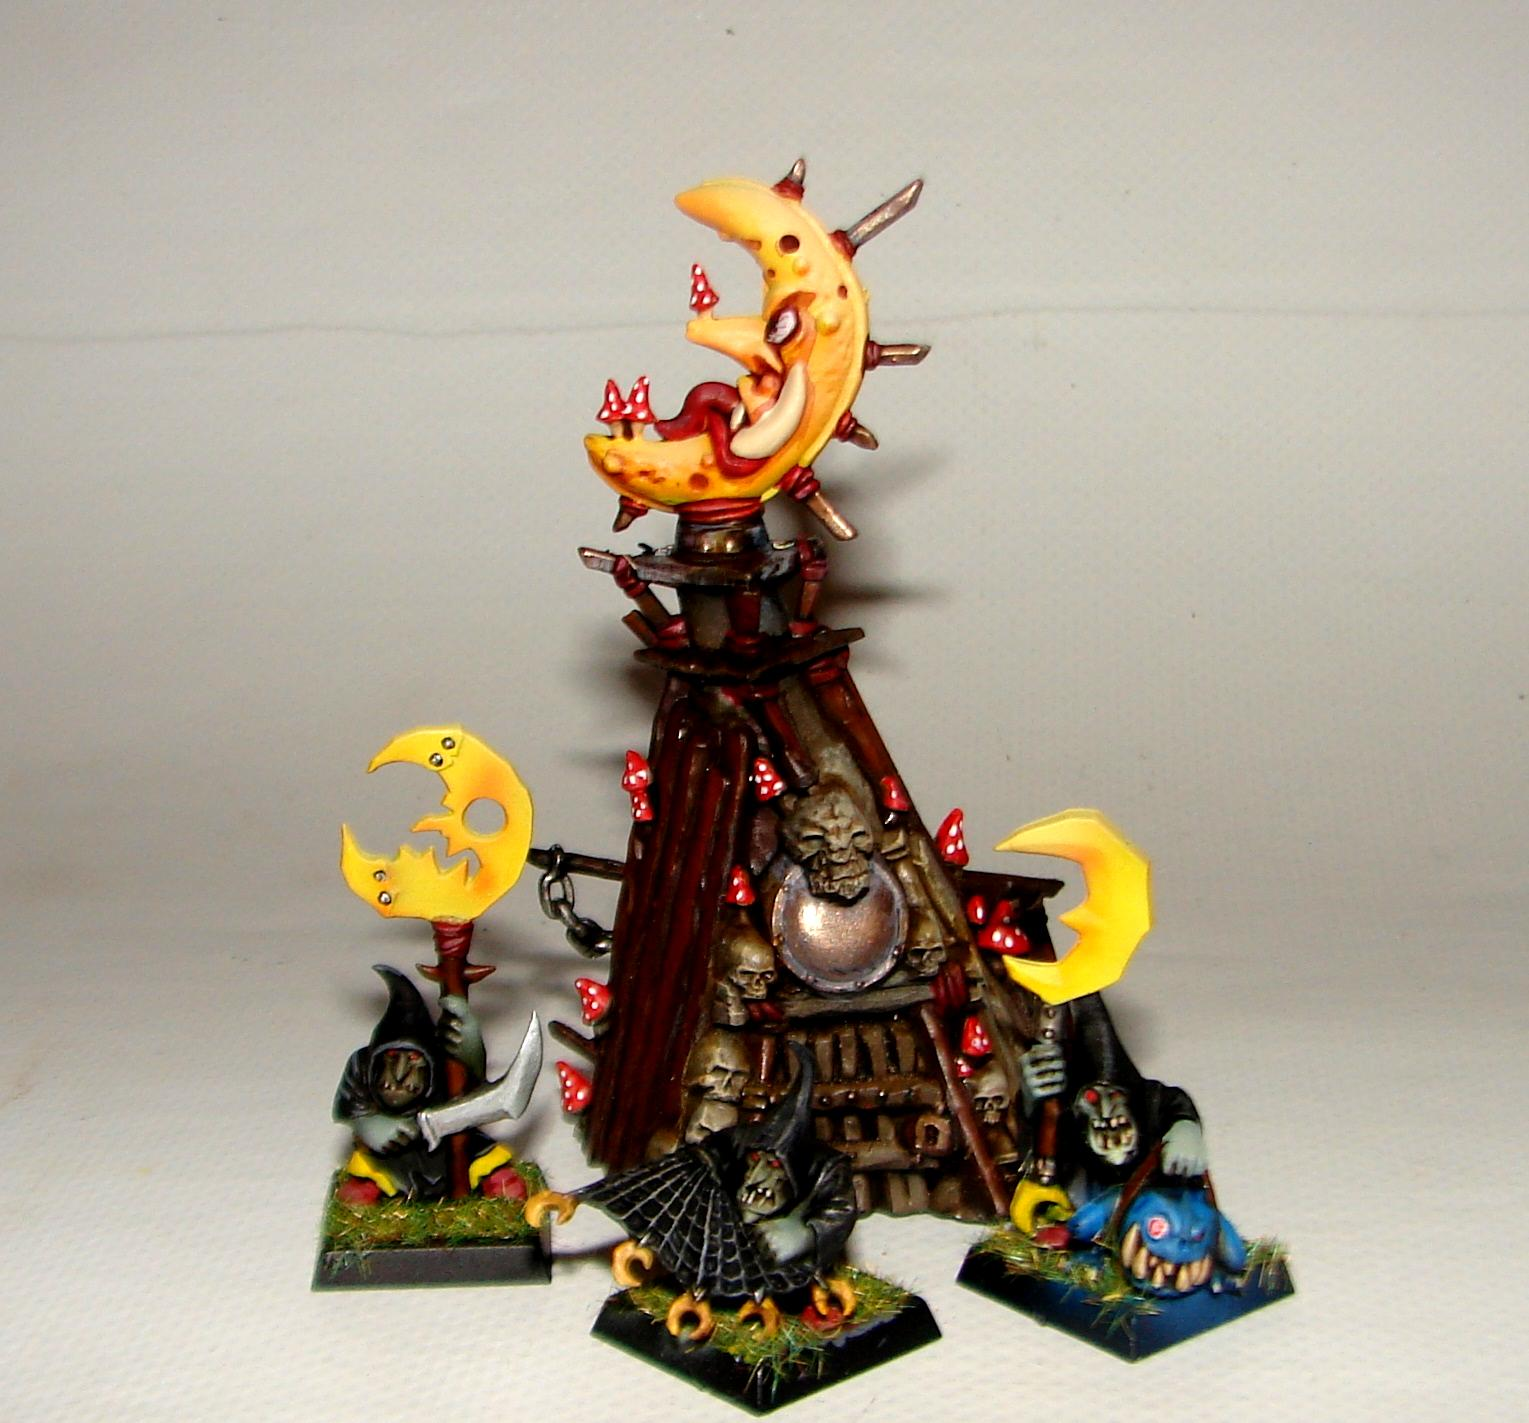 Are, Bad Moons, Goblins, Greenskins, Orks, Squigs, Stupid, Tags, Waagh, Warhammer Fantasy